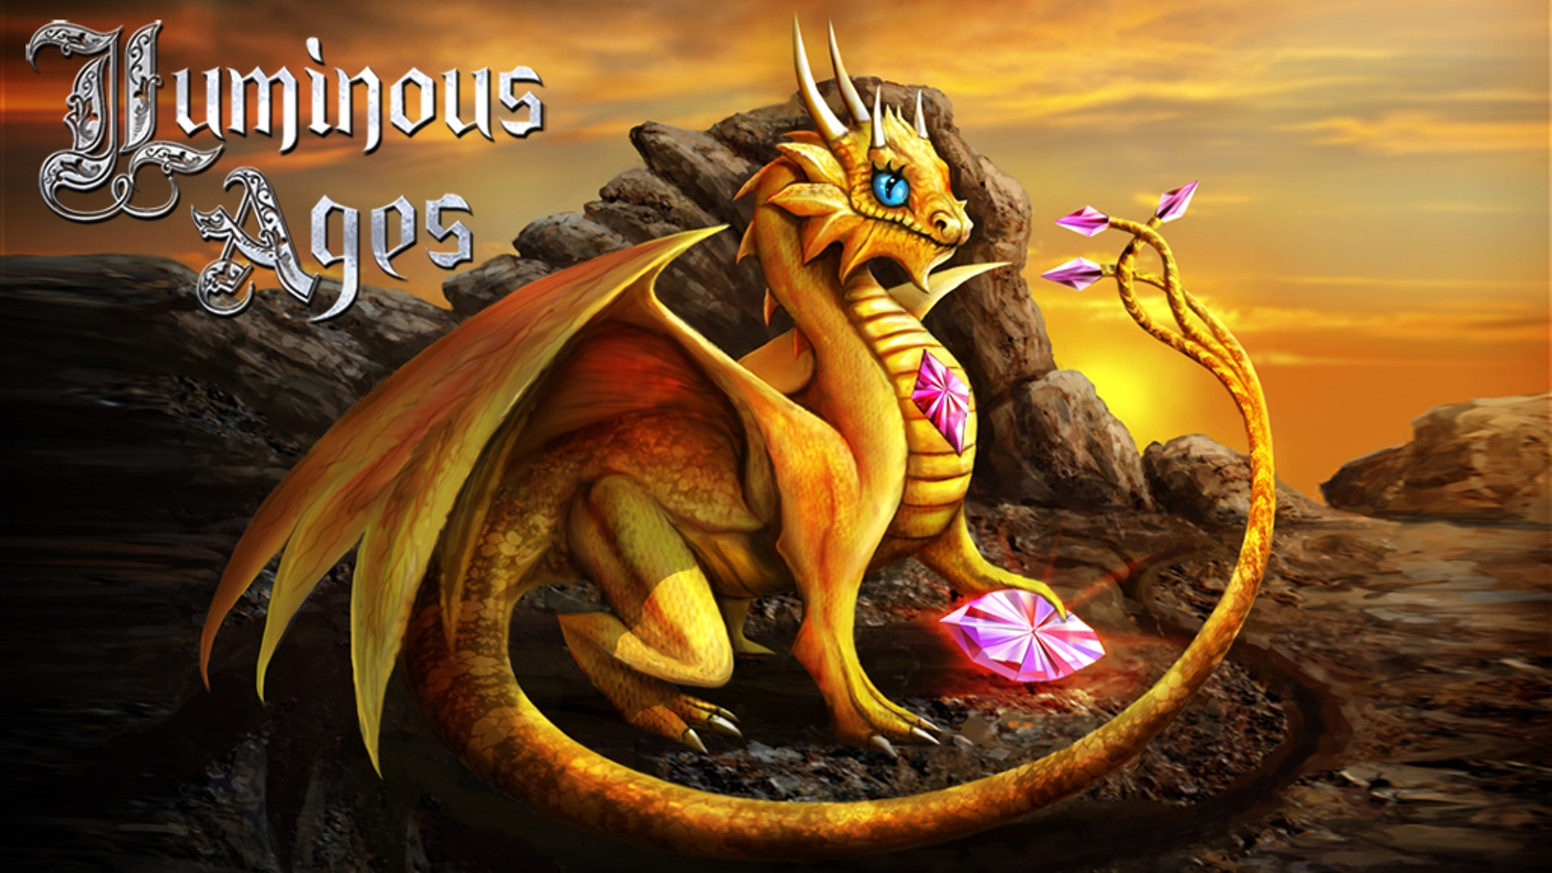 Luminous Ages A Dragon Comic 1 3 Fantasy Commissions By